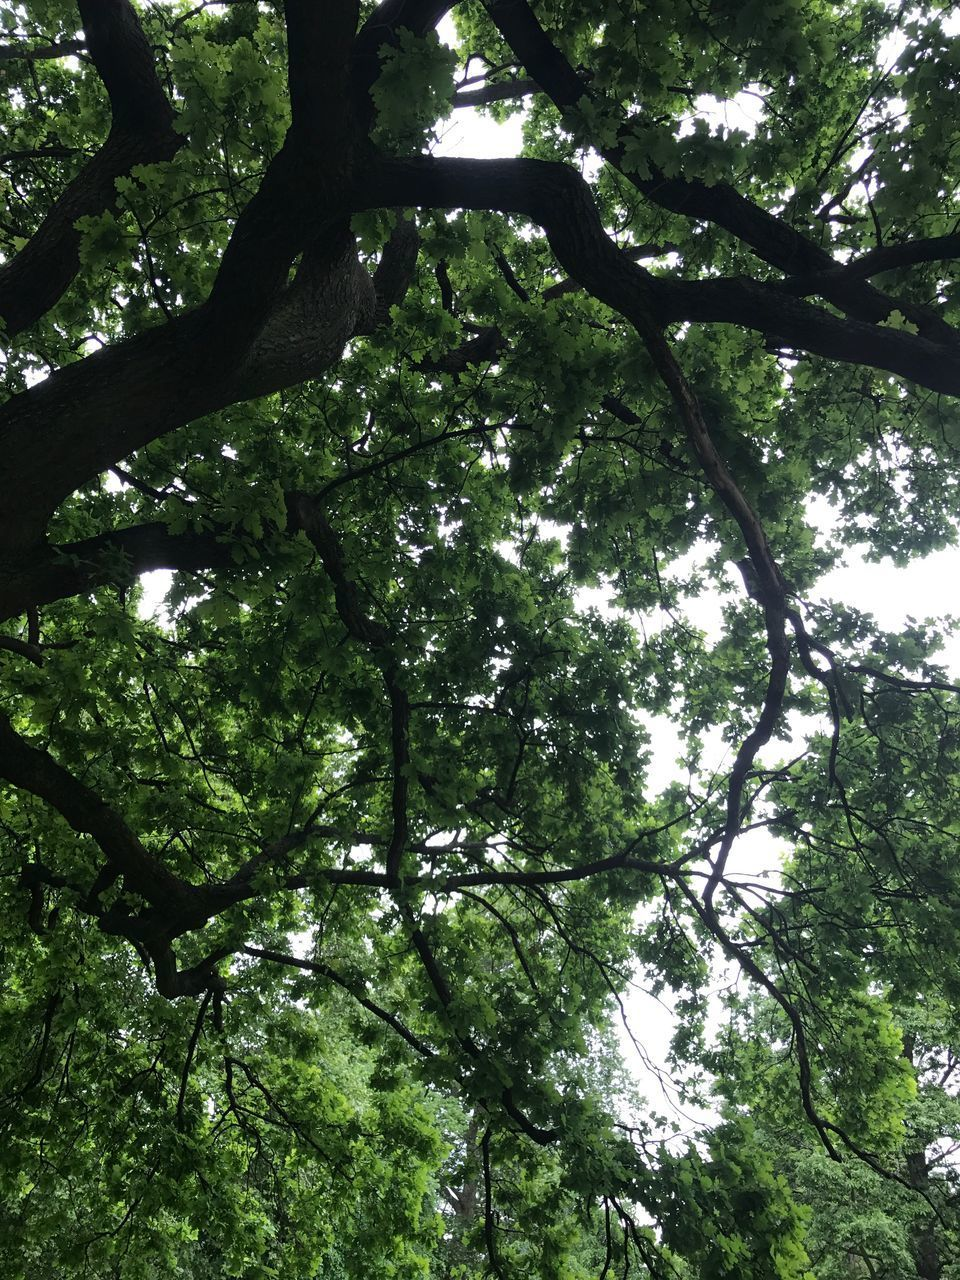 tree, low angle view, nature, forest, branch, day, growth, green color, no people, outdoors, beauty in nature, tranquility, high